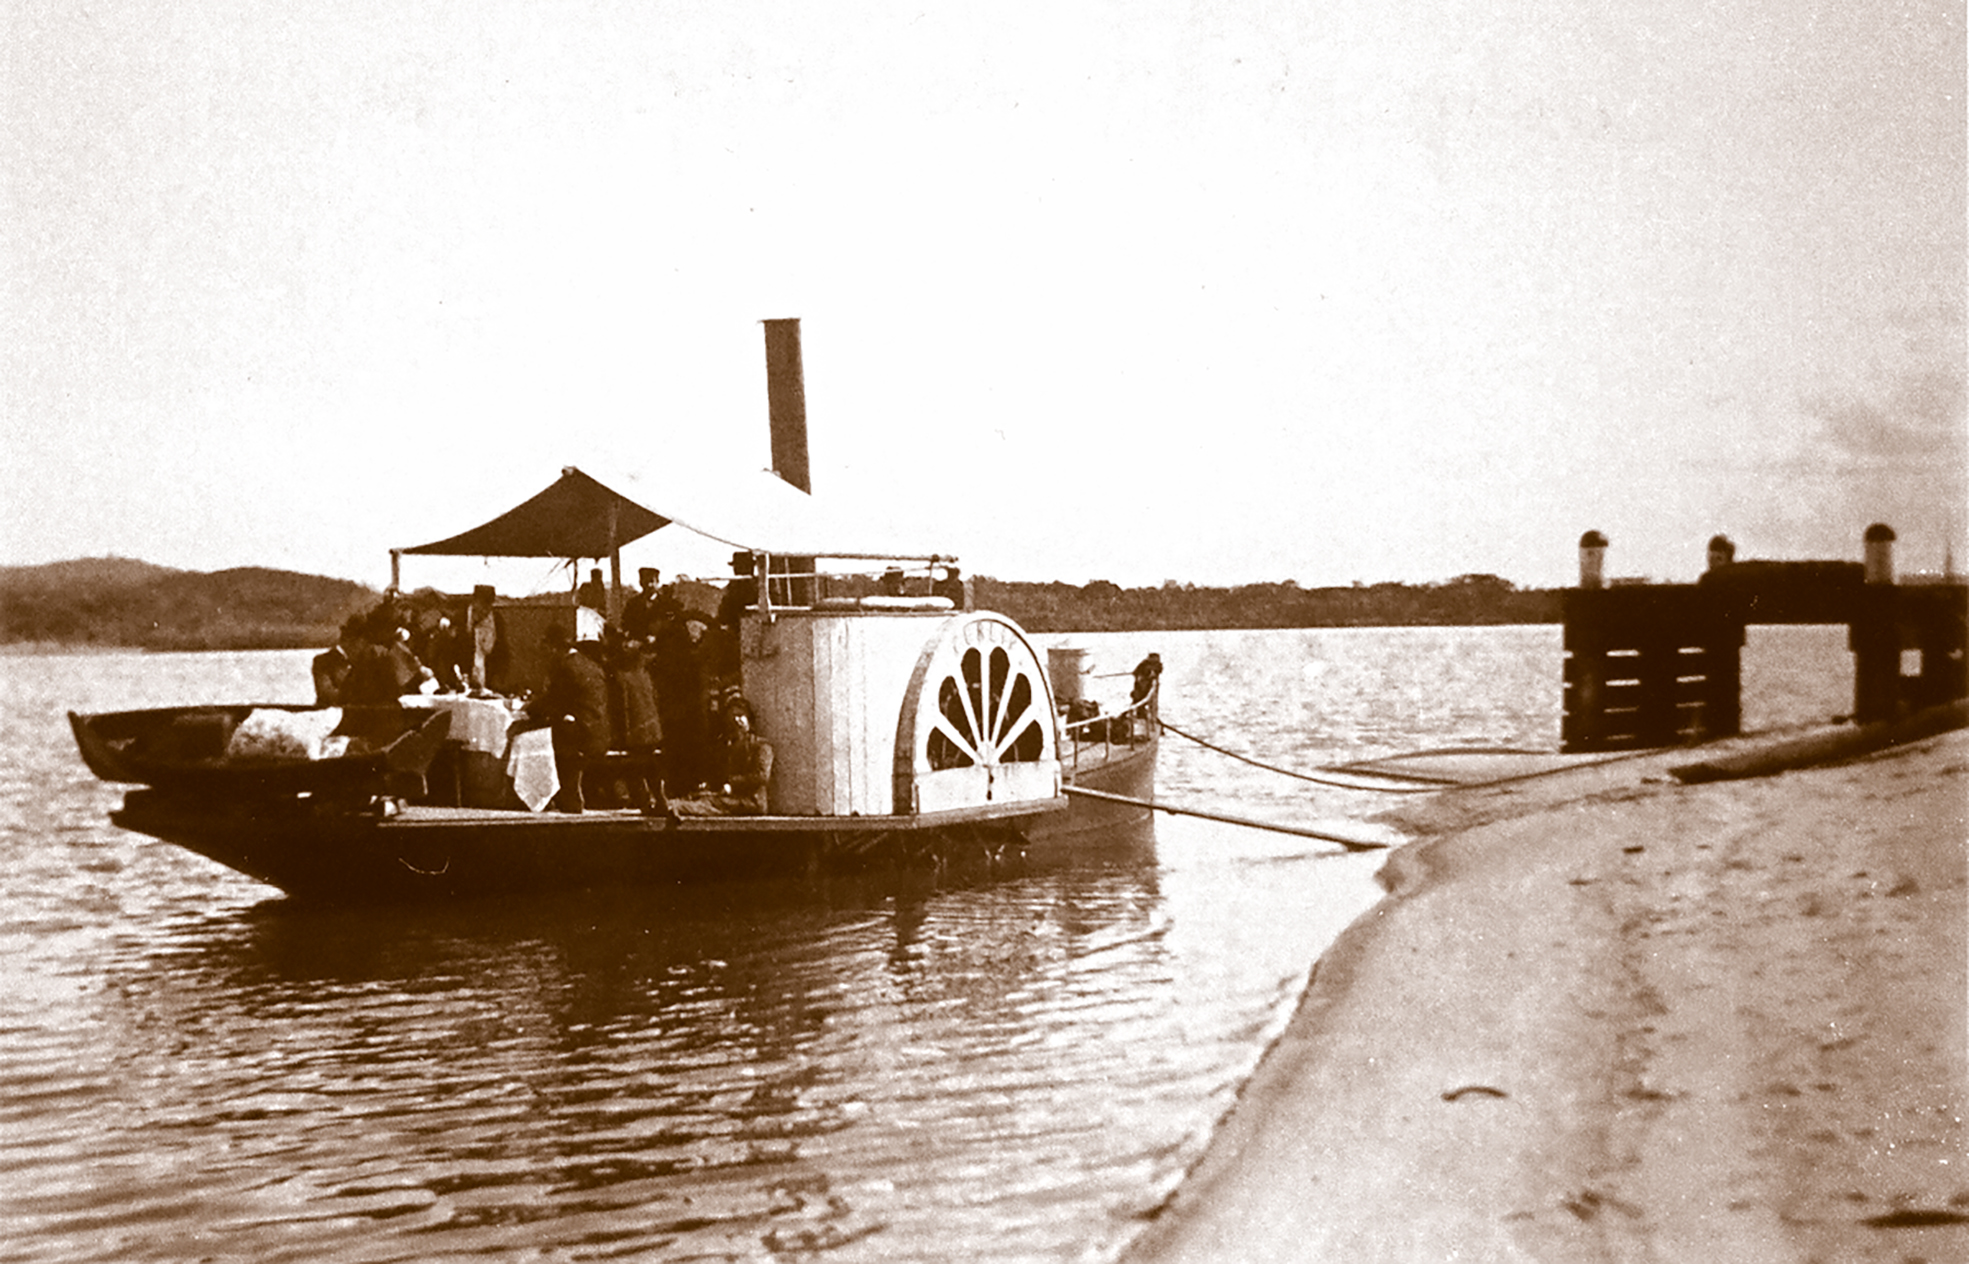 Things were done with a sense of style back in the day... Paddle Steamer Curlip will be providing high afternoon tea aboard in 2017 when she returns to service along the Mitchell River.... some things should never change.